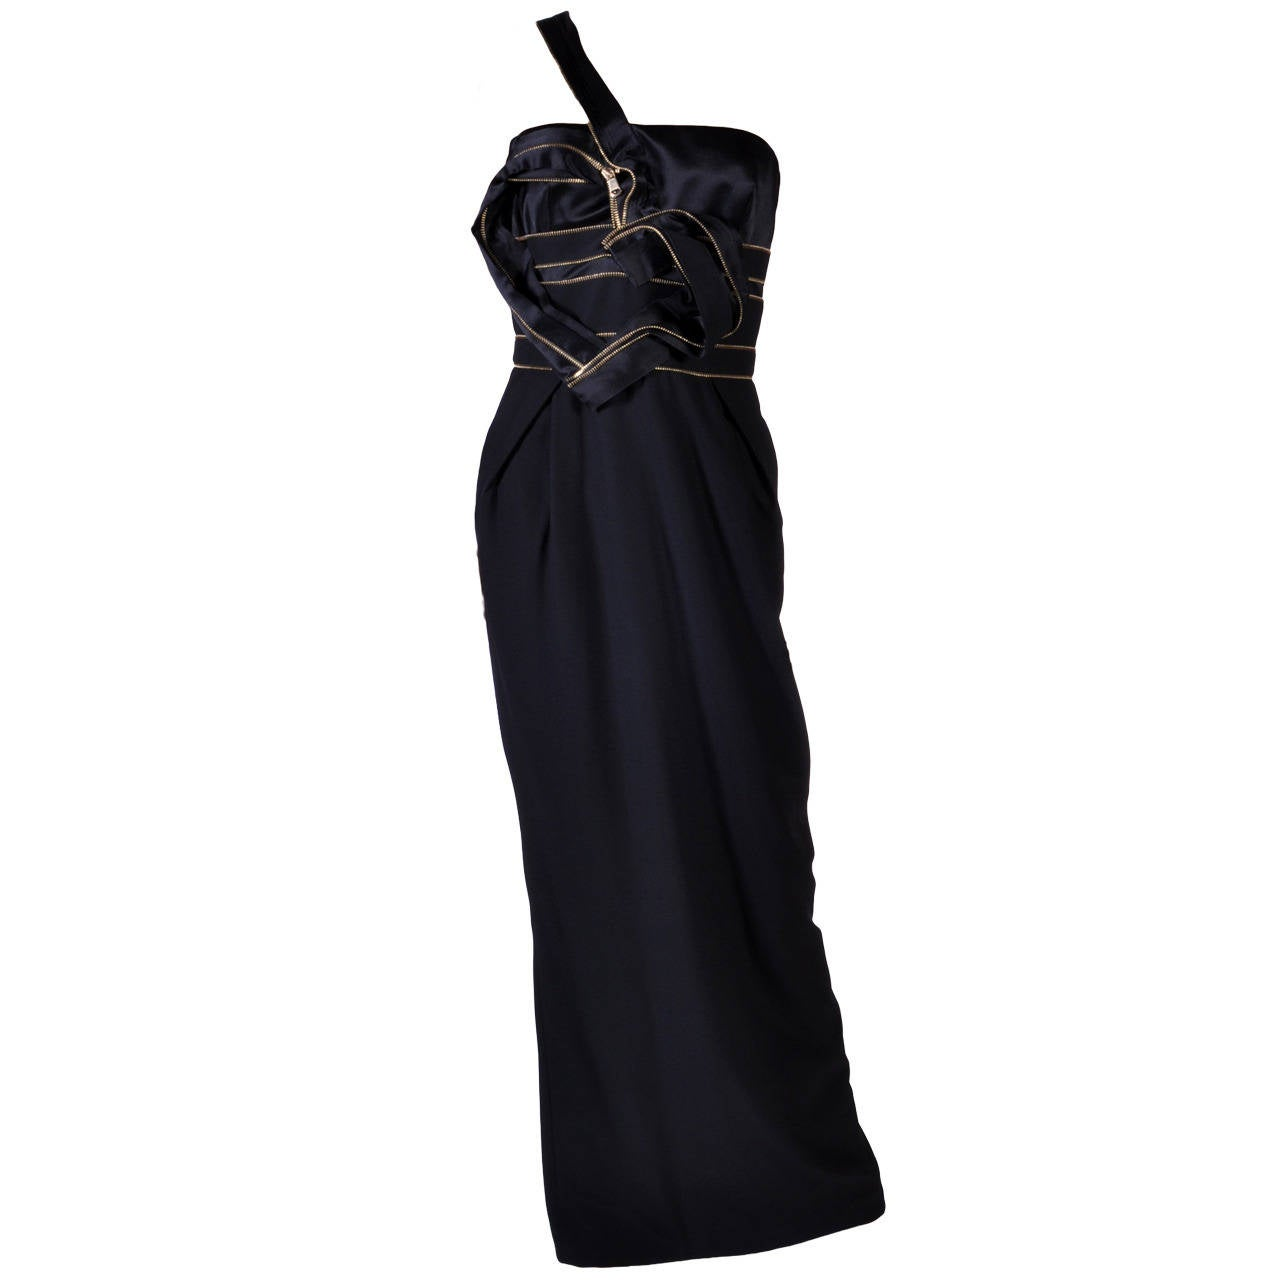 New VERSACE ONE SHOULDER BLACK LONG DRESS GOWN WITH HEART